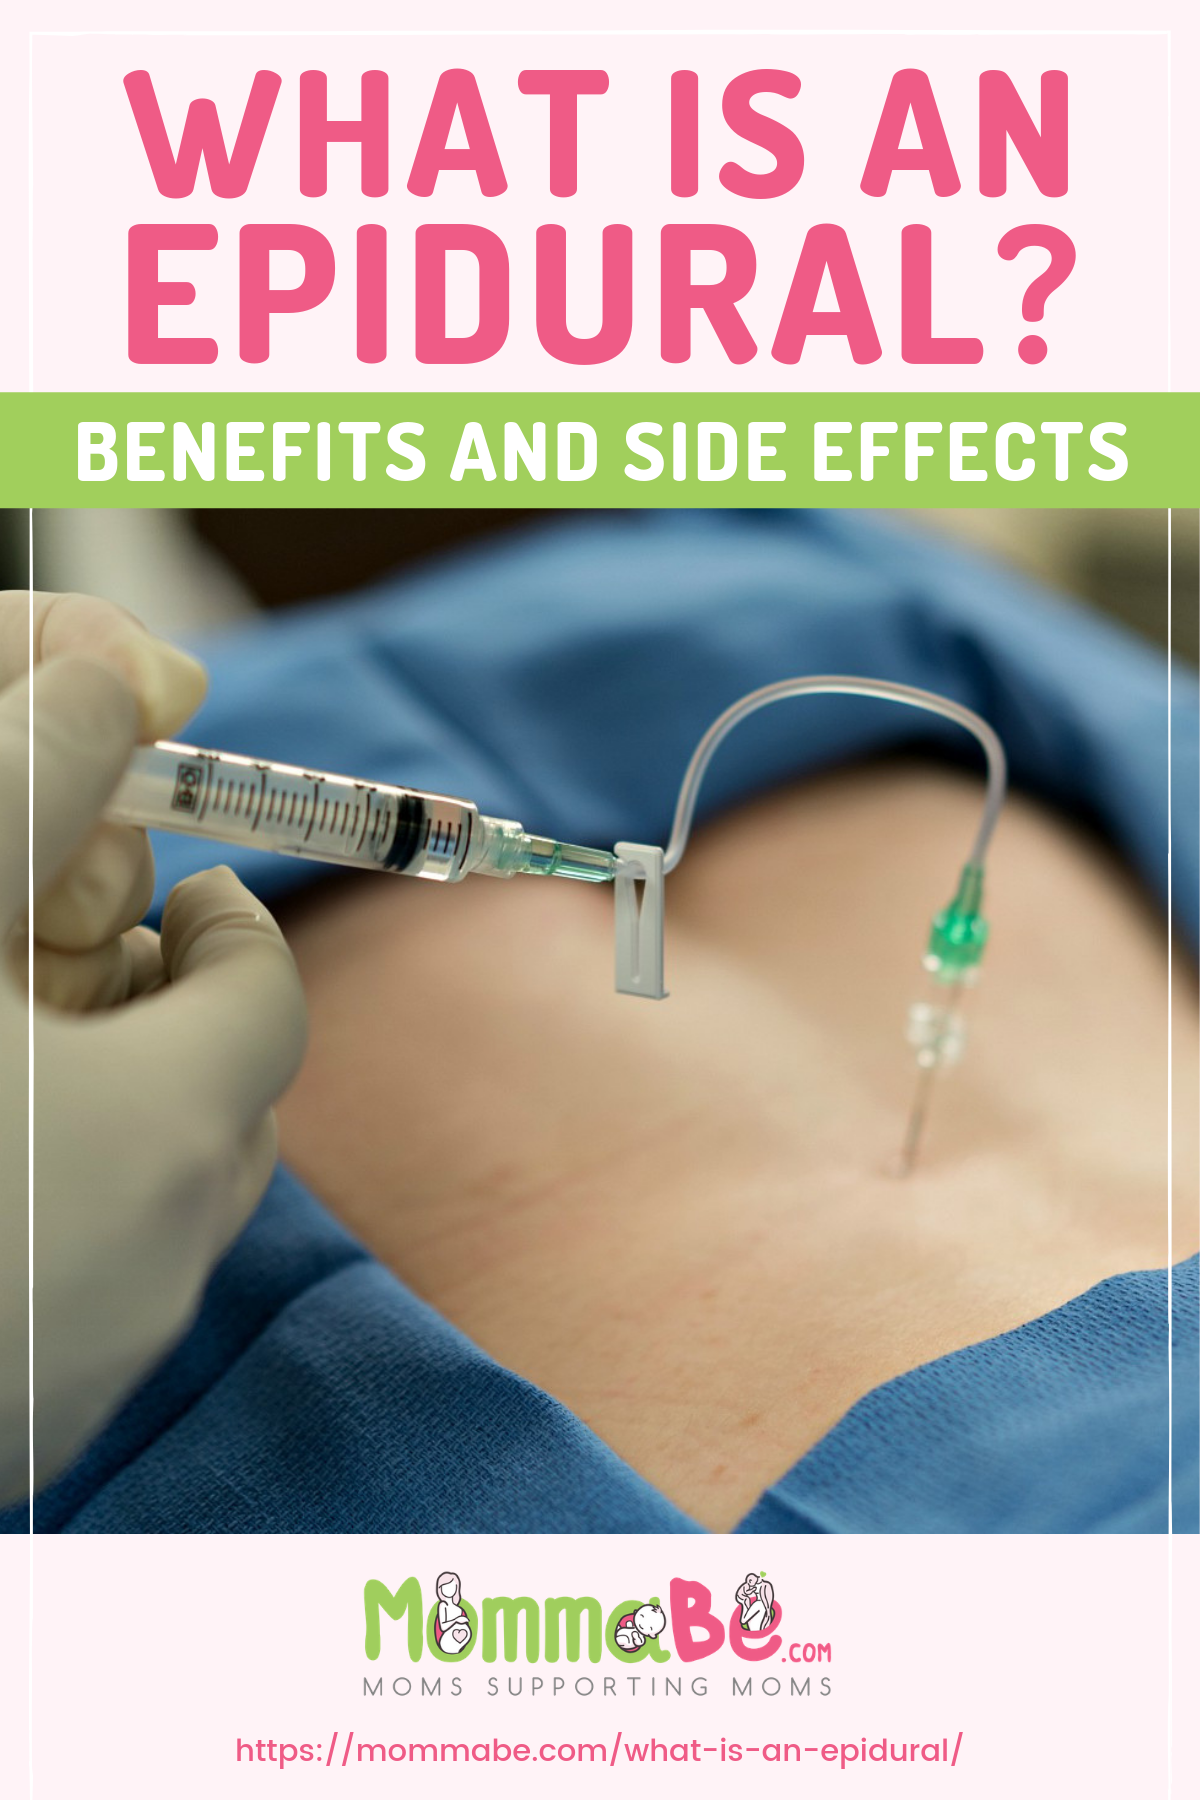 What Is An Epidural? Benefits And Side Effects | https://mommabe.com/what-is-an-epidural/